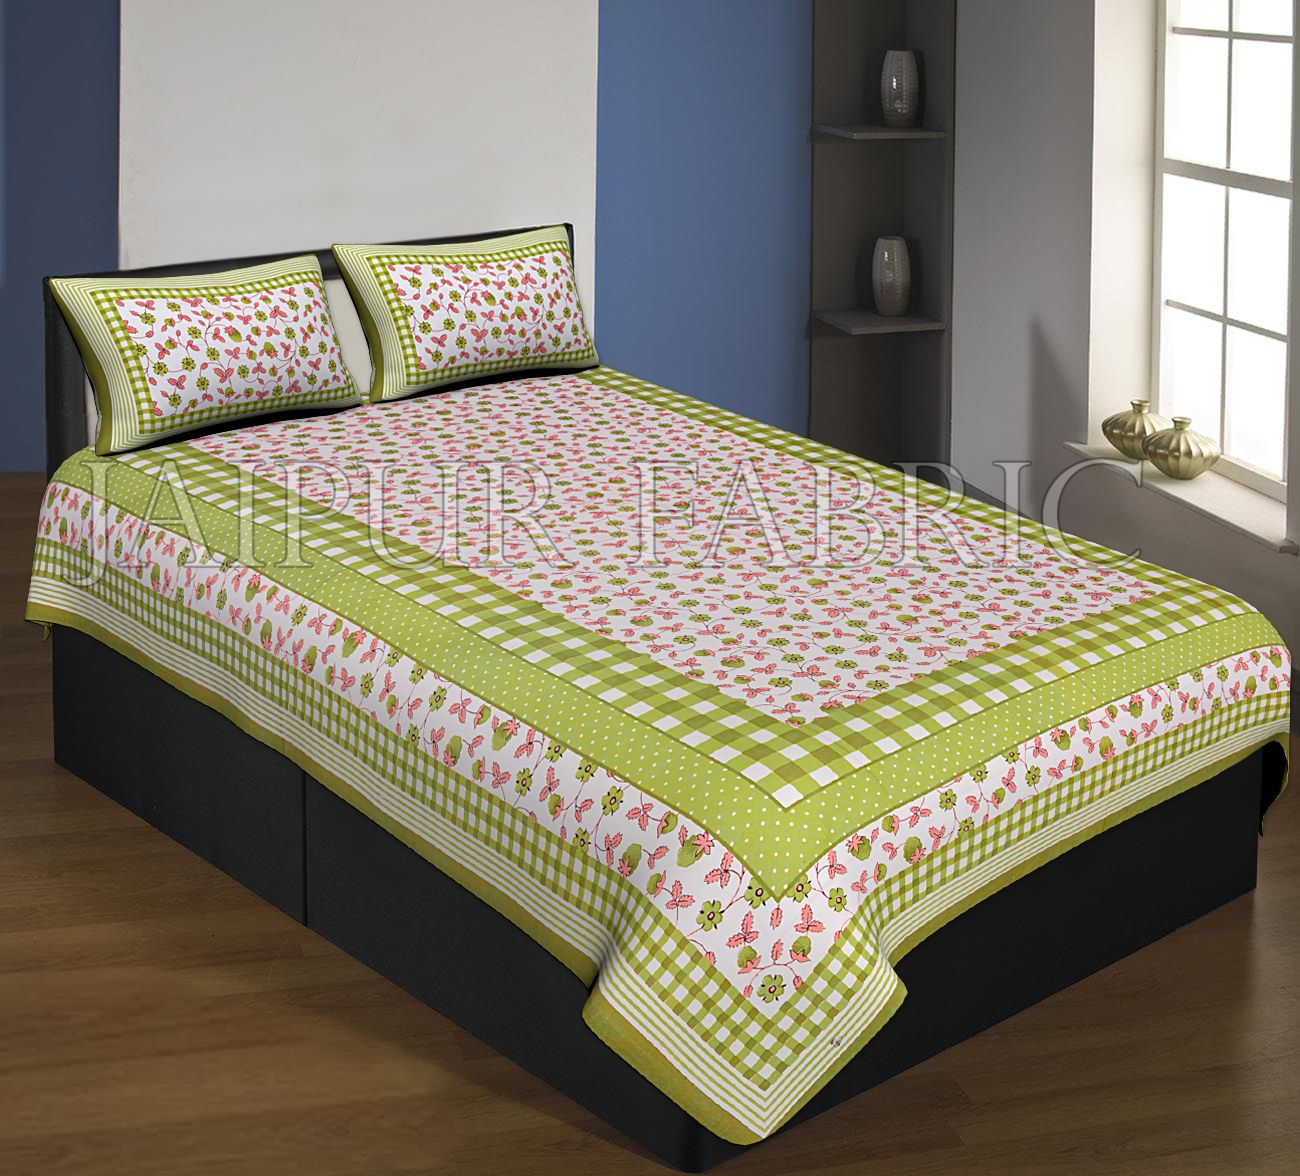 Green Boarder With Check Print And Dot Flower Pattern Single Bed Sheet With 2 Pillow Cover